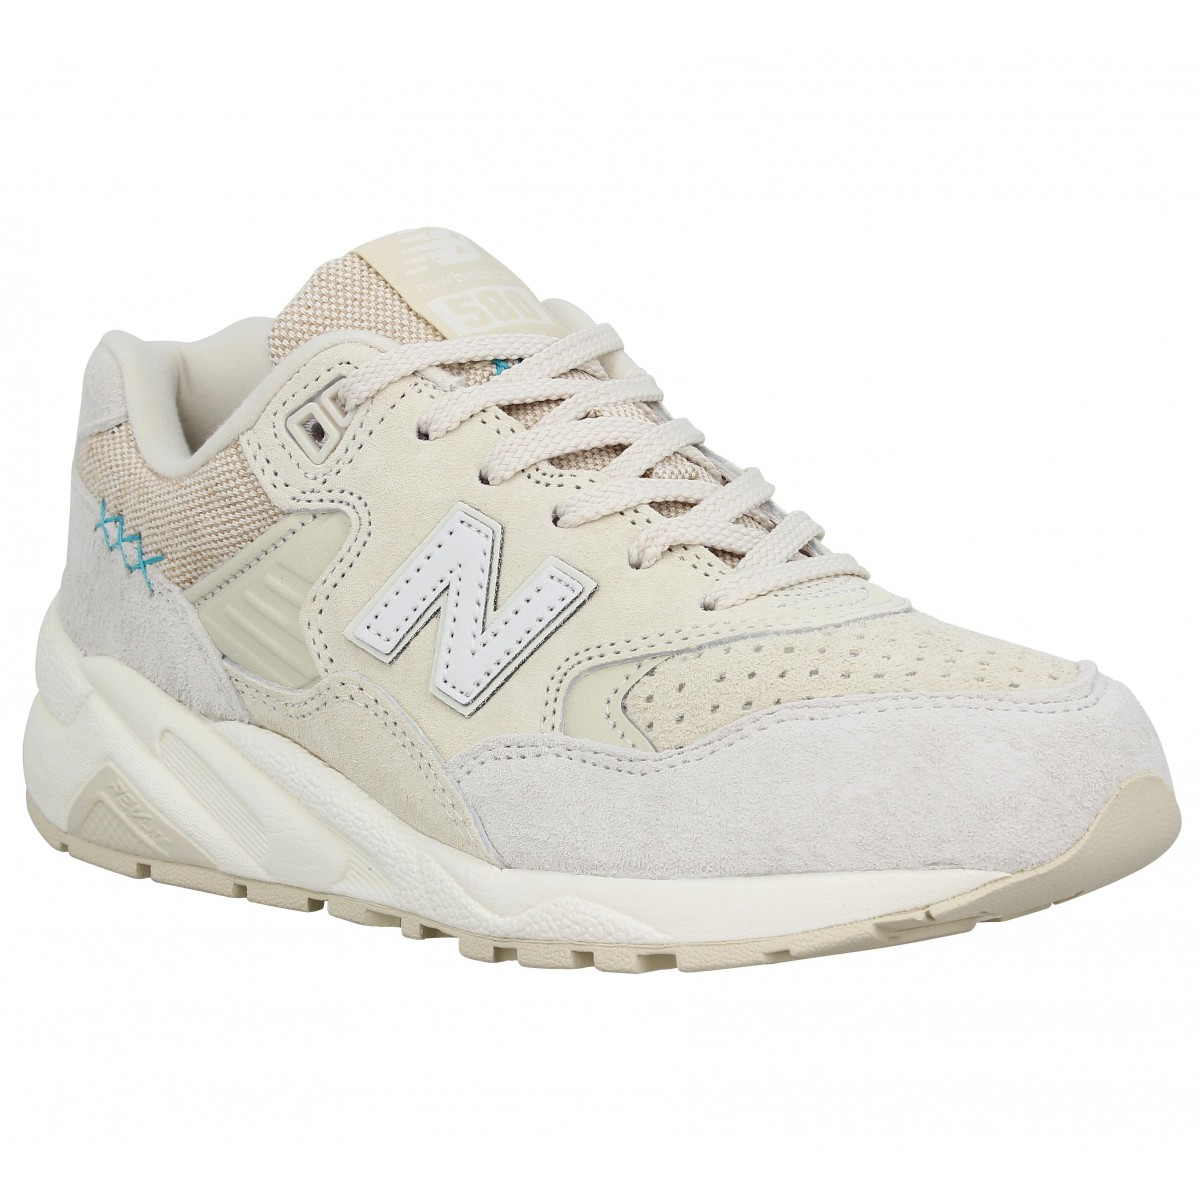 Baskets NEW BALANCE 580 velours toile Femme Salt